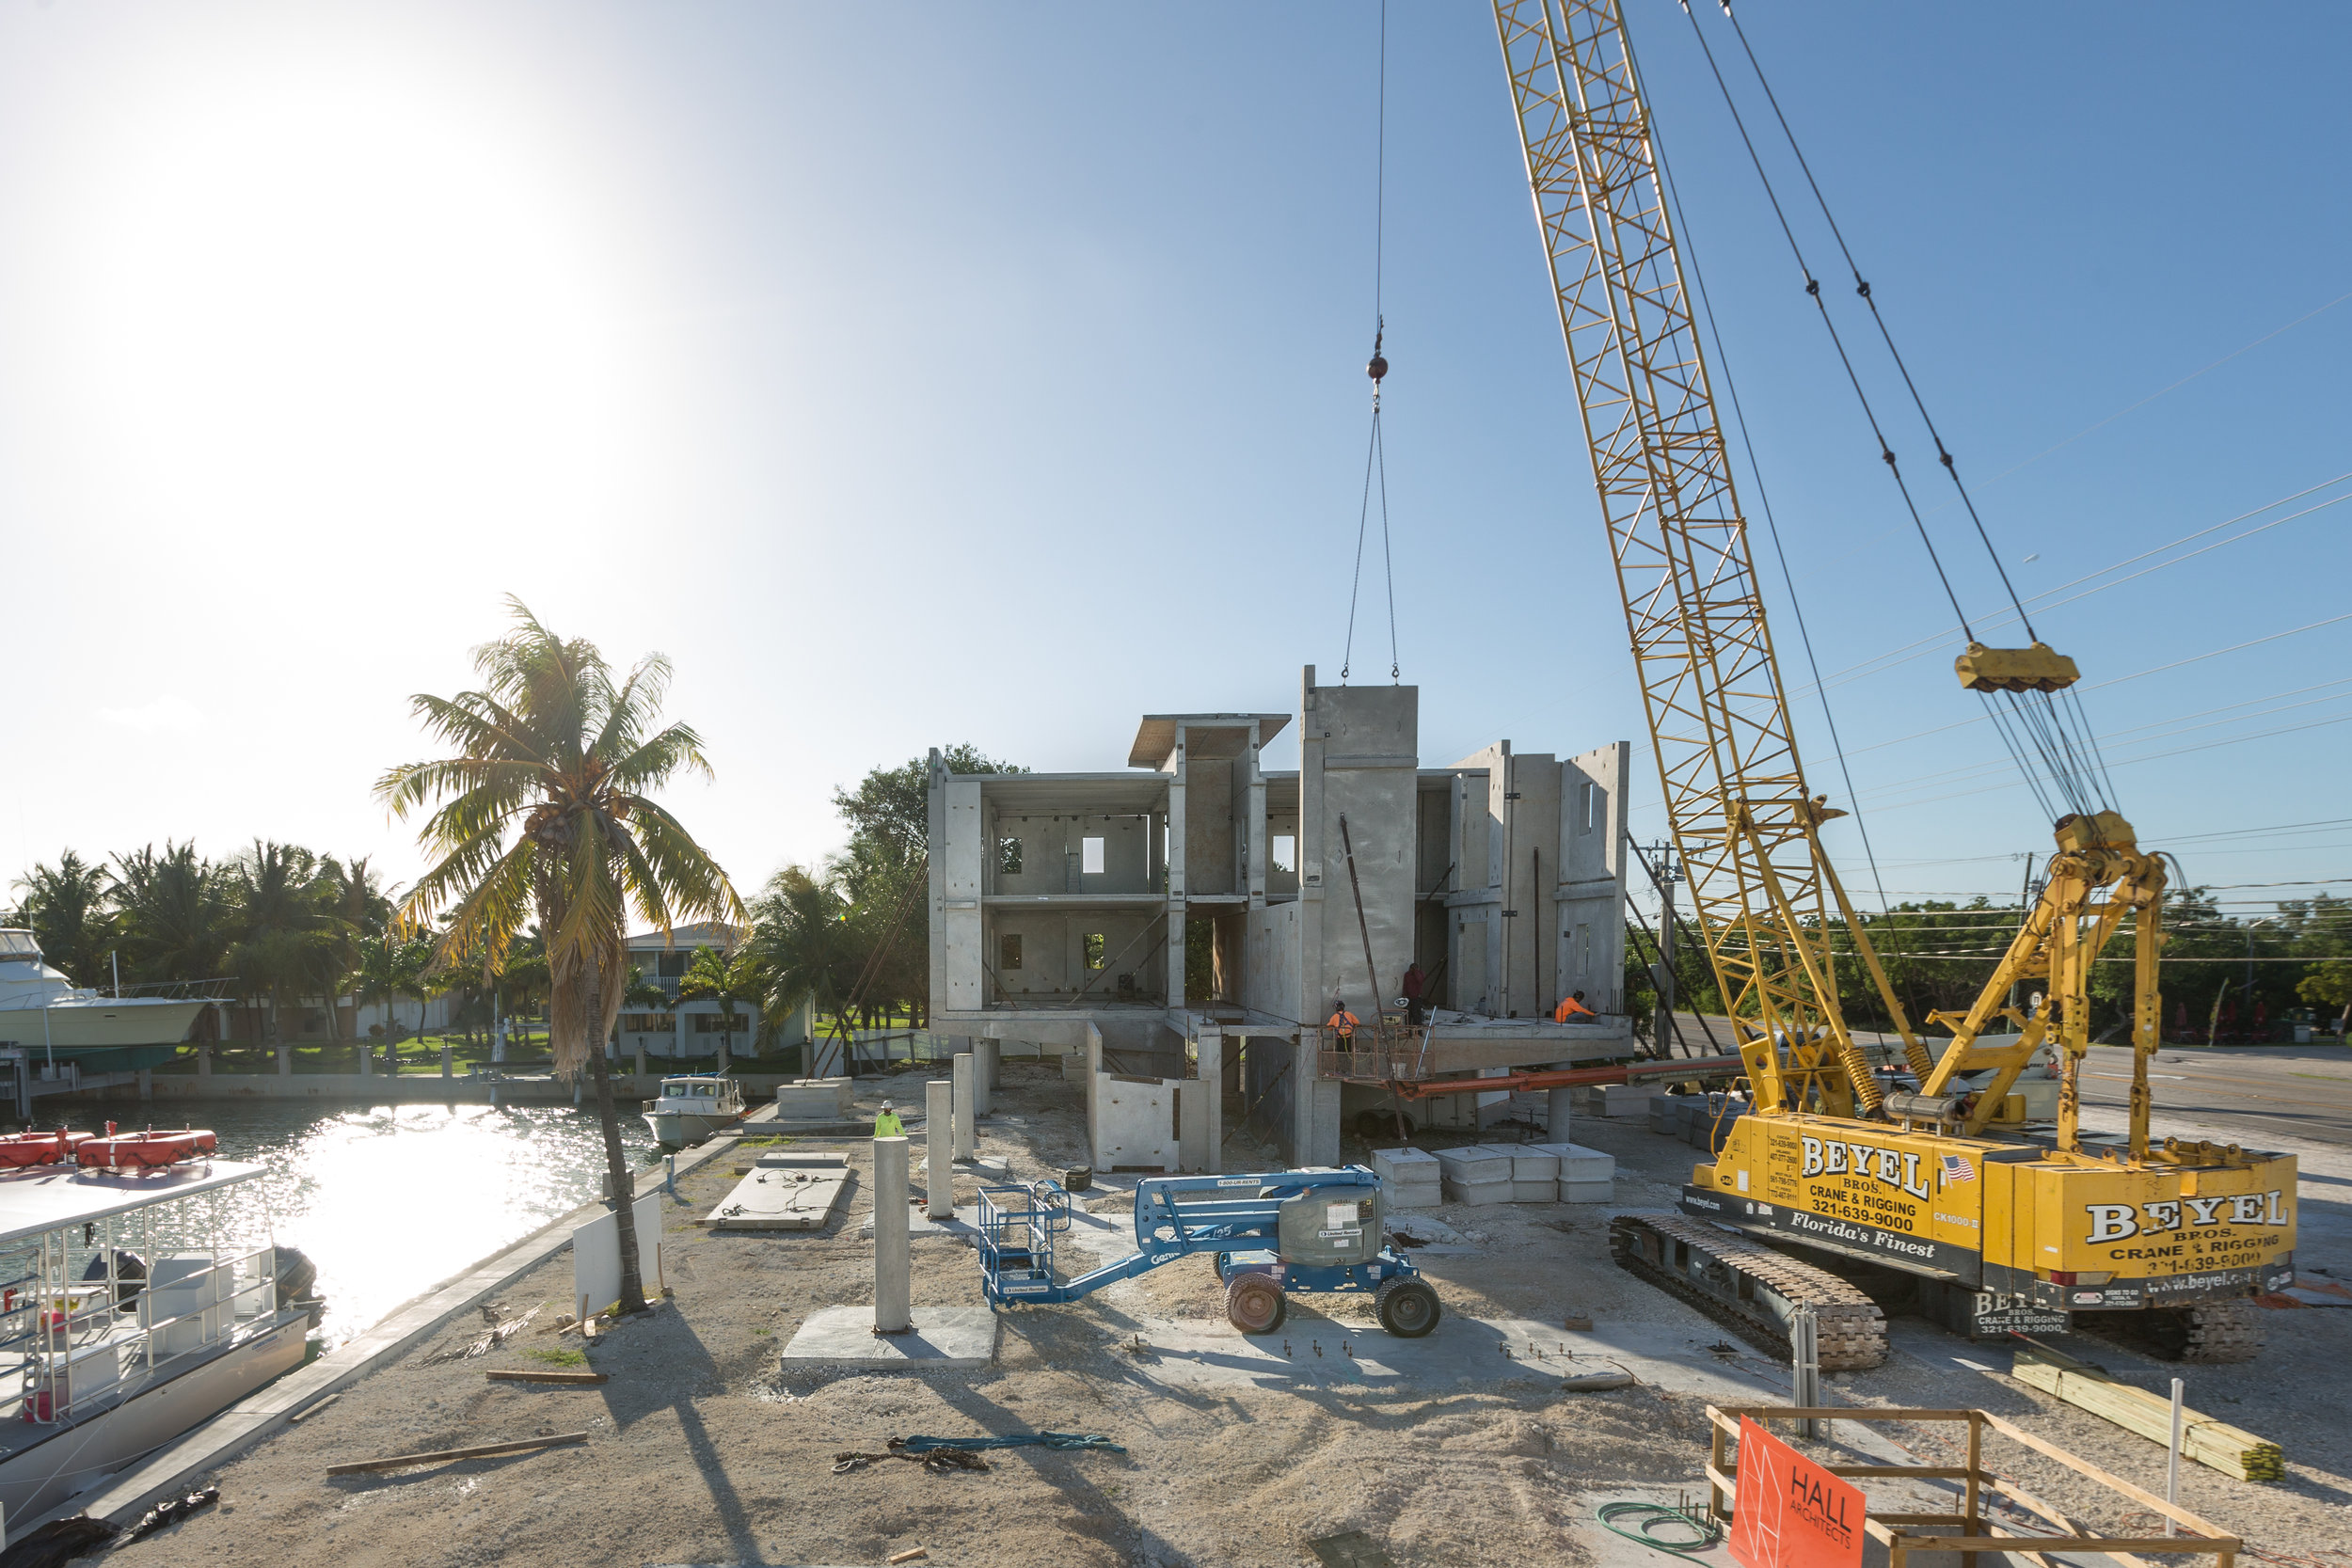 The new lab in the process of being built. Completed in April of 2017, Mote's new building is category 5 hurricane proof, and passed the test that September when Hurricane Irma devastated the Florida Keys.